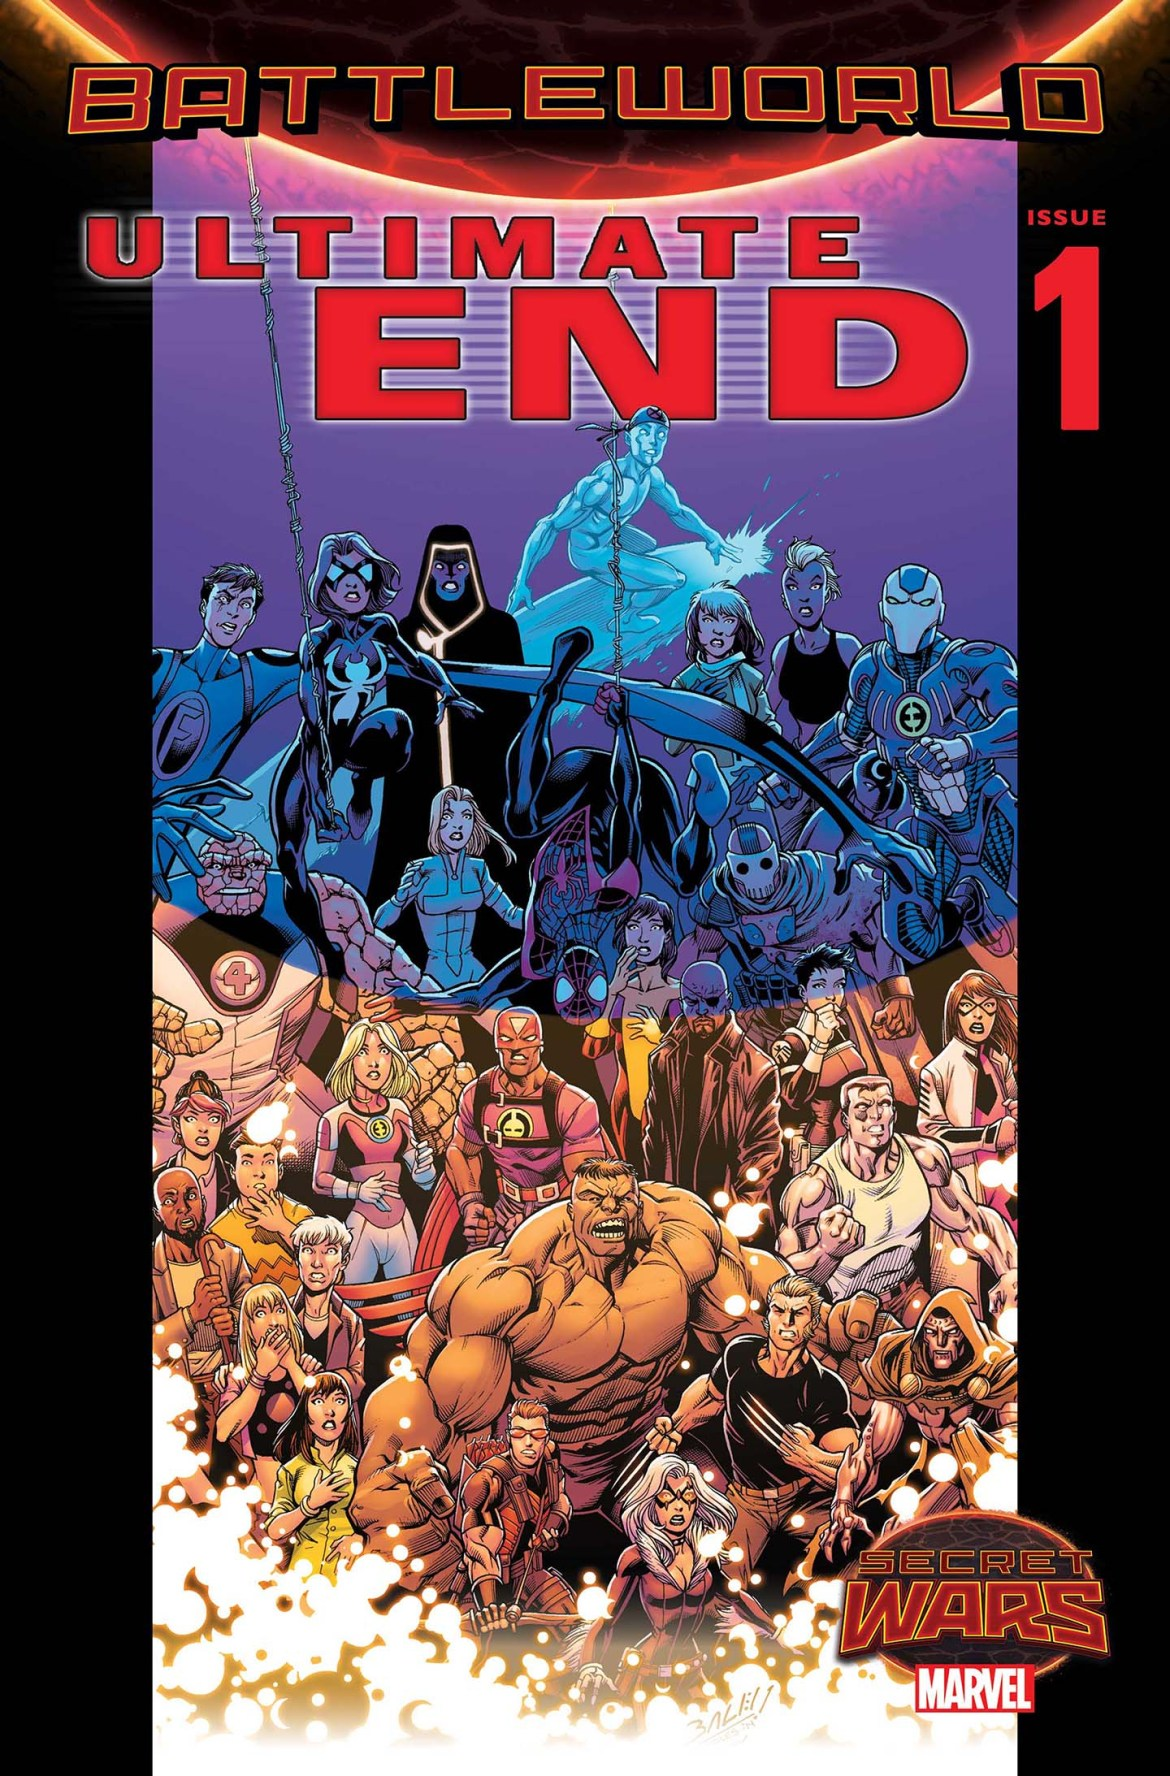 Ultimate_End_1_Cover The Ultimate Universe ends in the ULTIMATE END